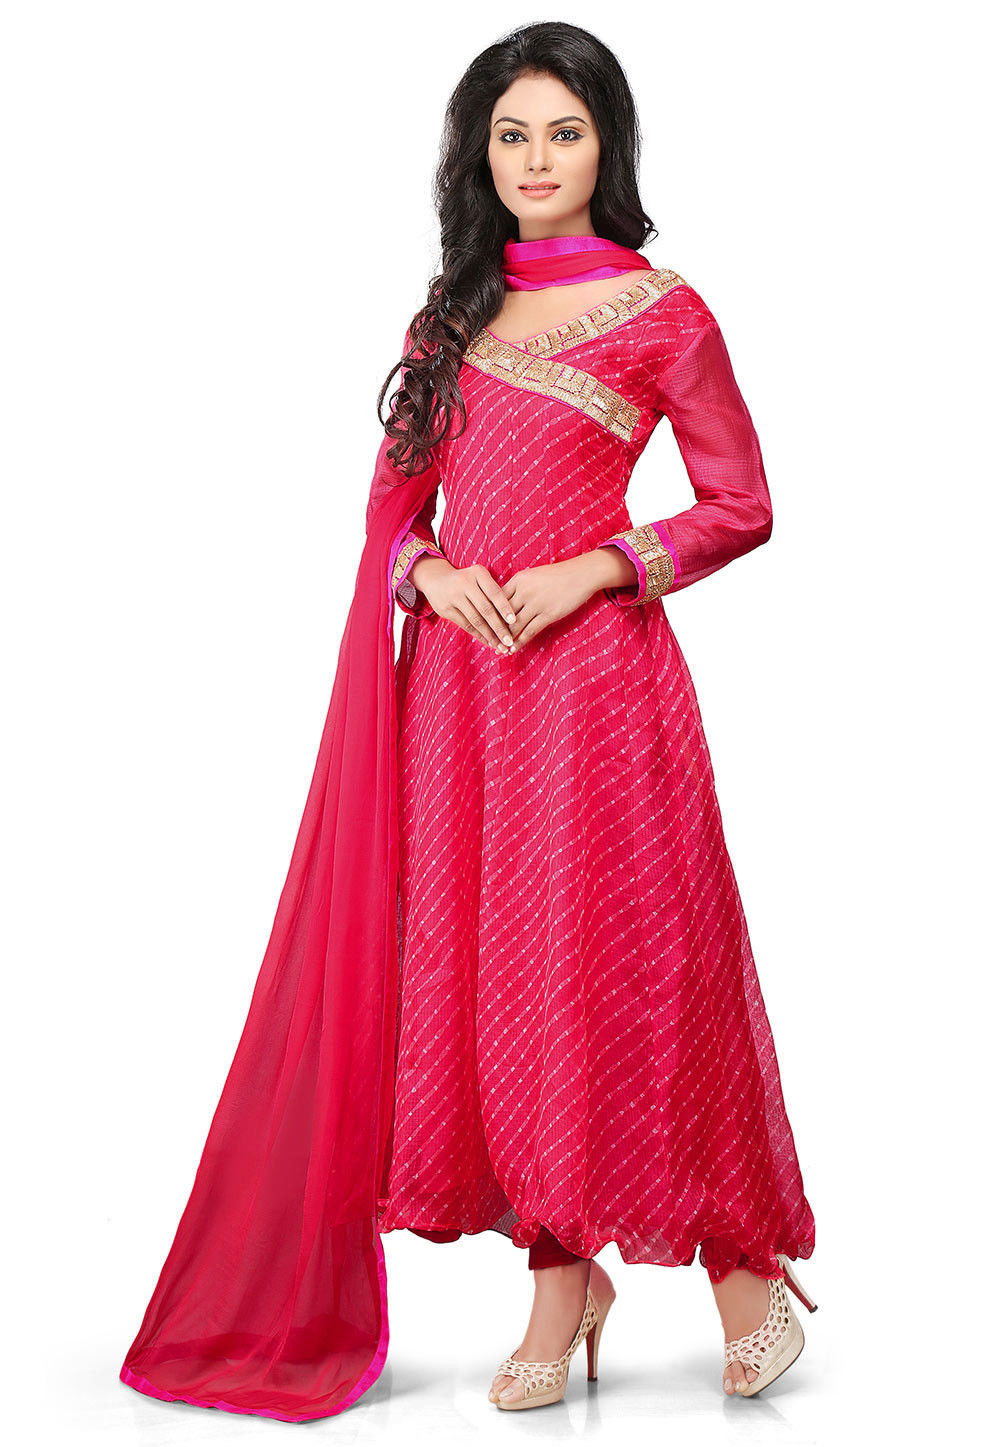 Printed Pure Kota Tissue Anarkali Style Suit in Fuchsia